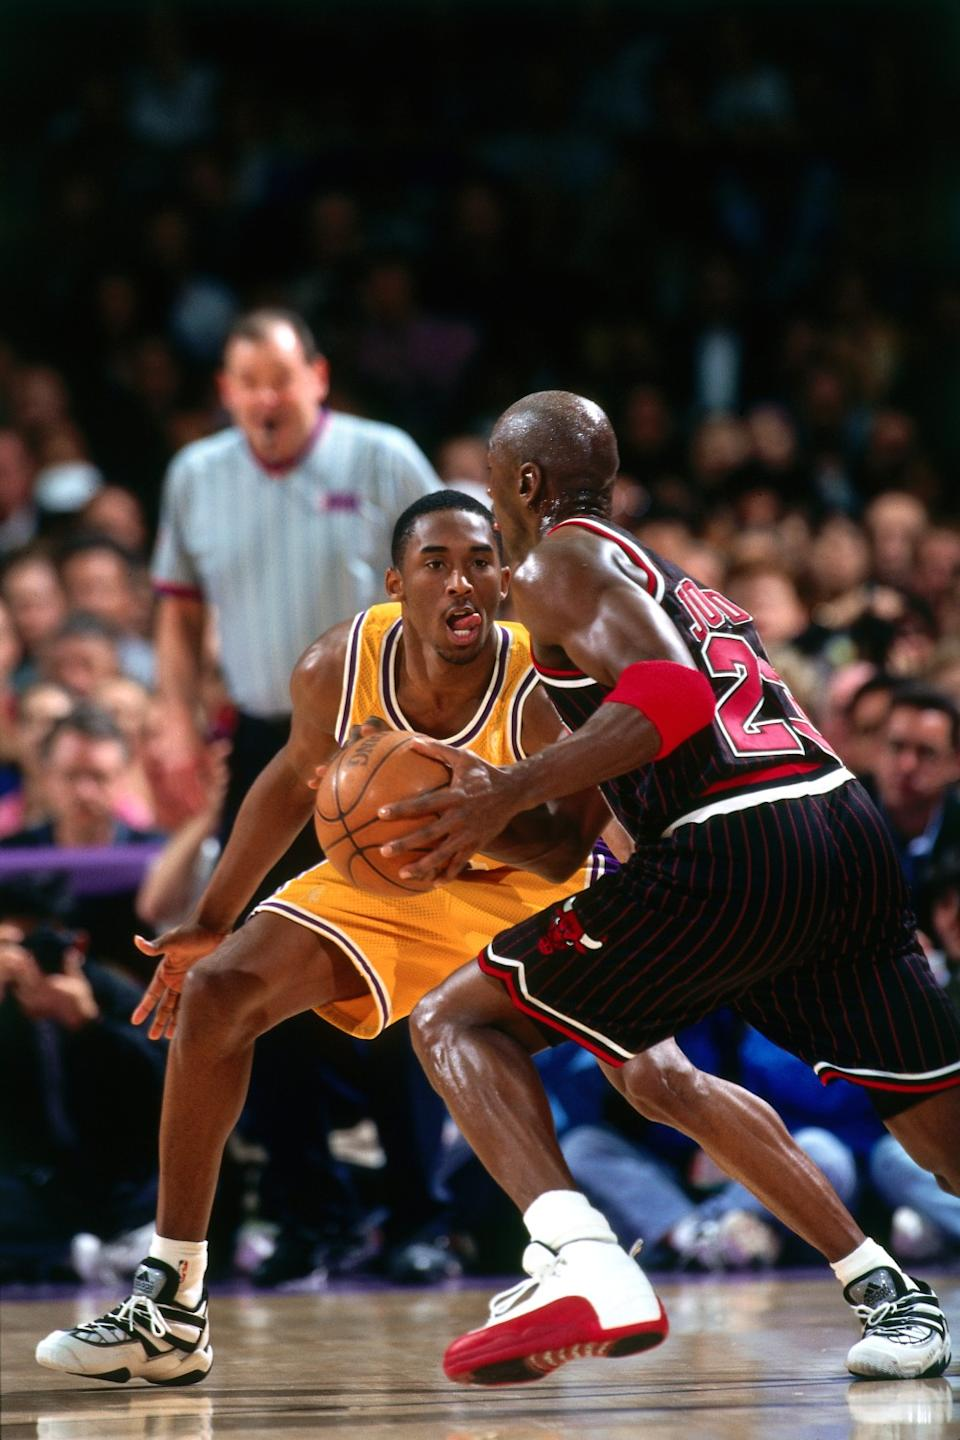 Chicago Bulls forward drives against Lakers guard Kobe Bryant during a game at the Forum in February 1997.